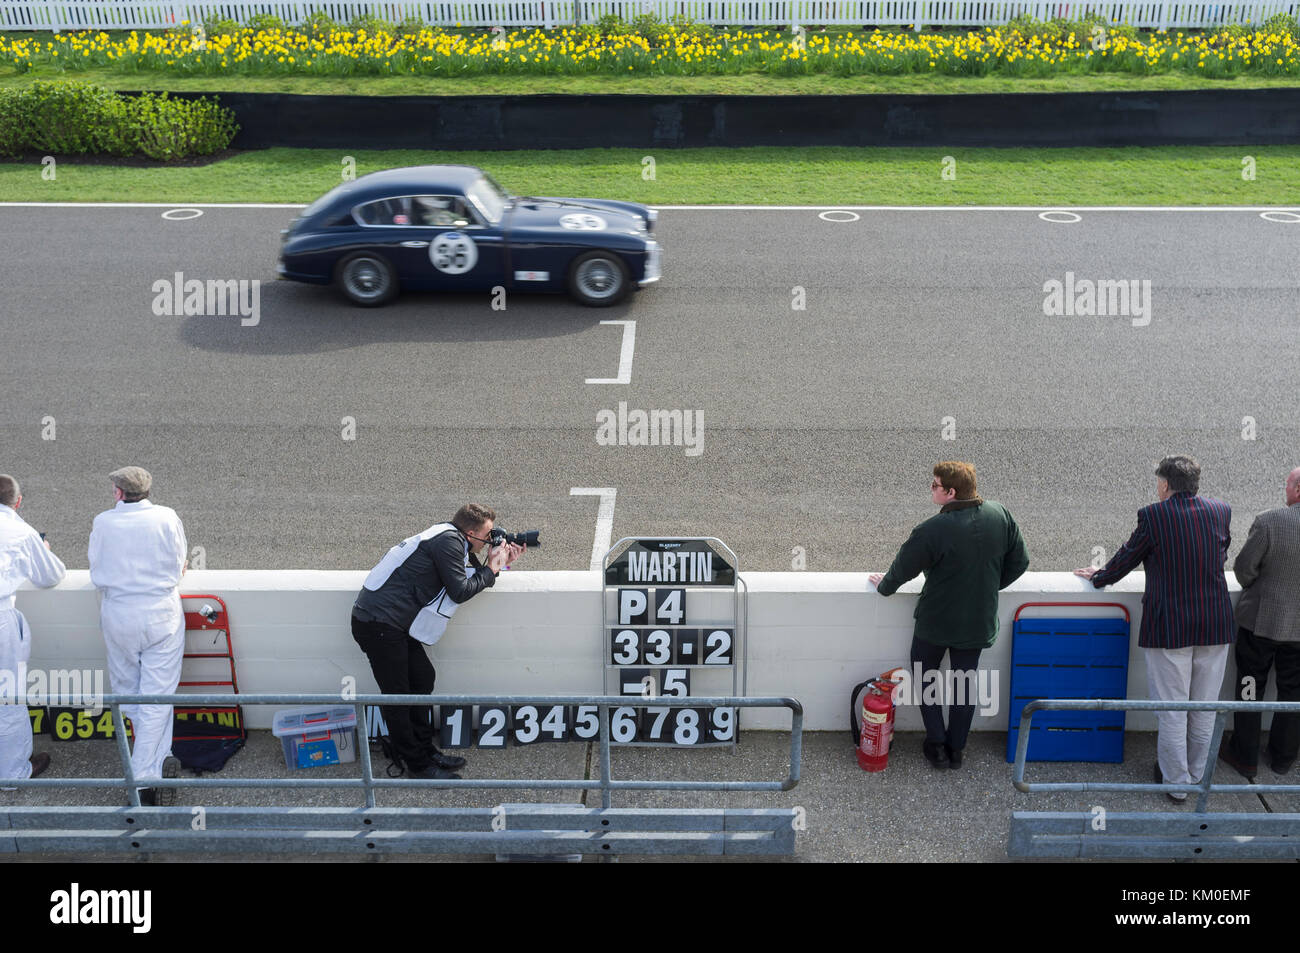 Finish line Goodwood Revival motor racing event, photograph and pit crew Stock Photo